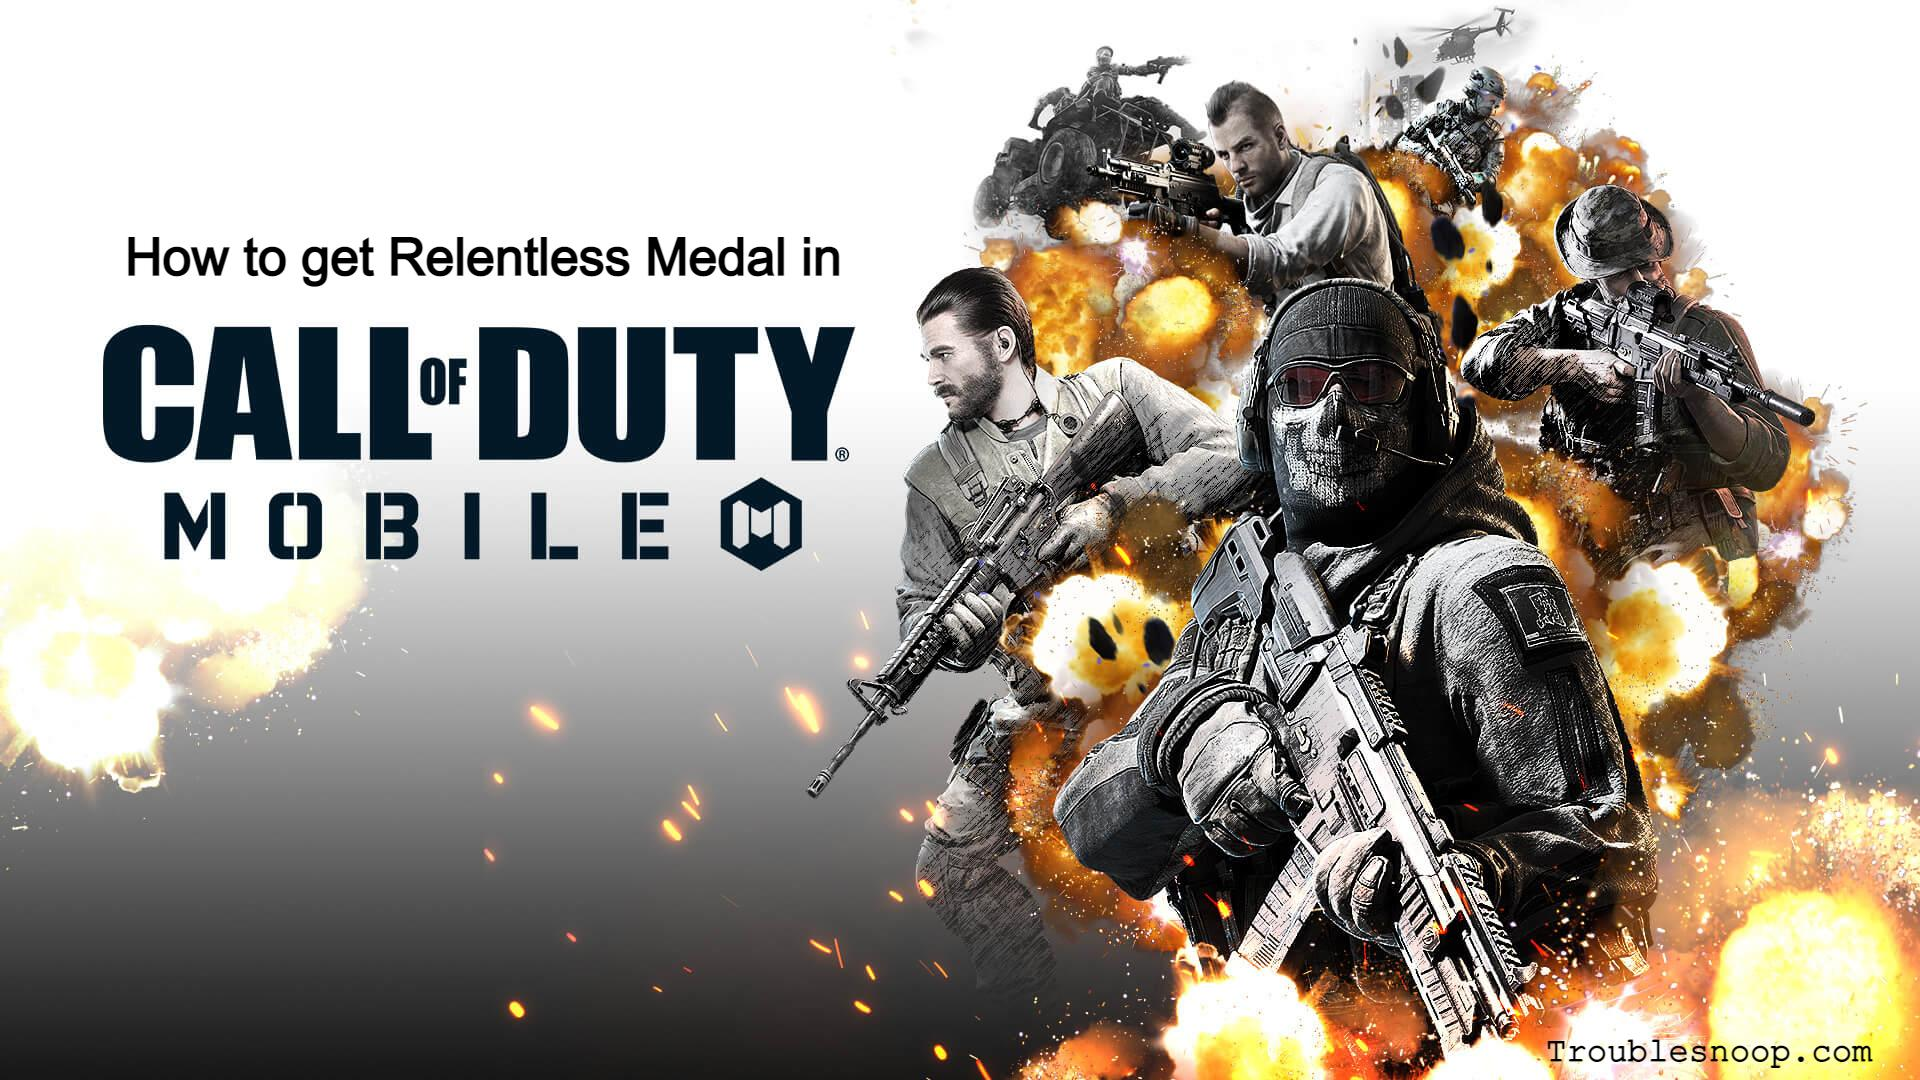 COD Mobile: How to get Relentless Medal in Call of Duty Mobile Season 2